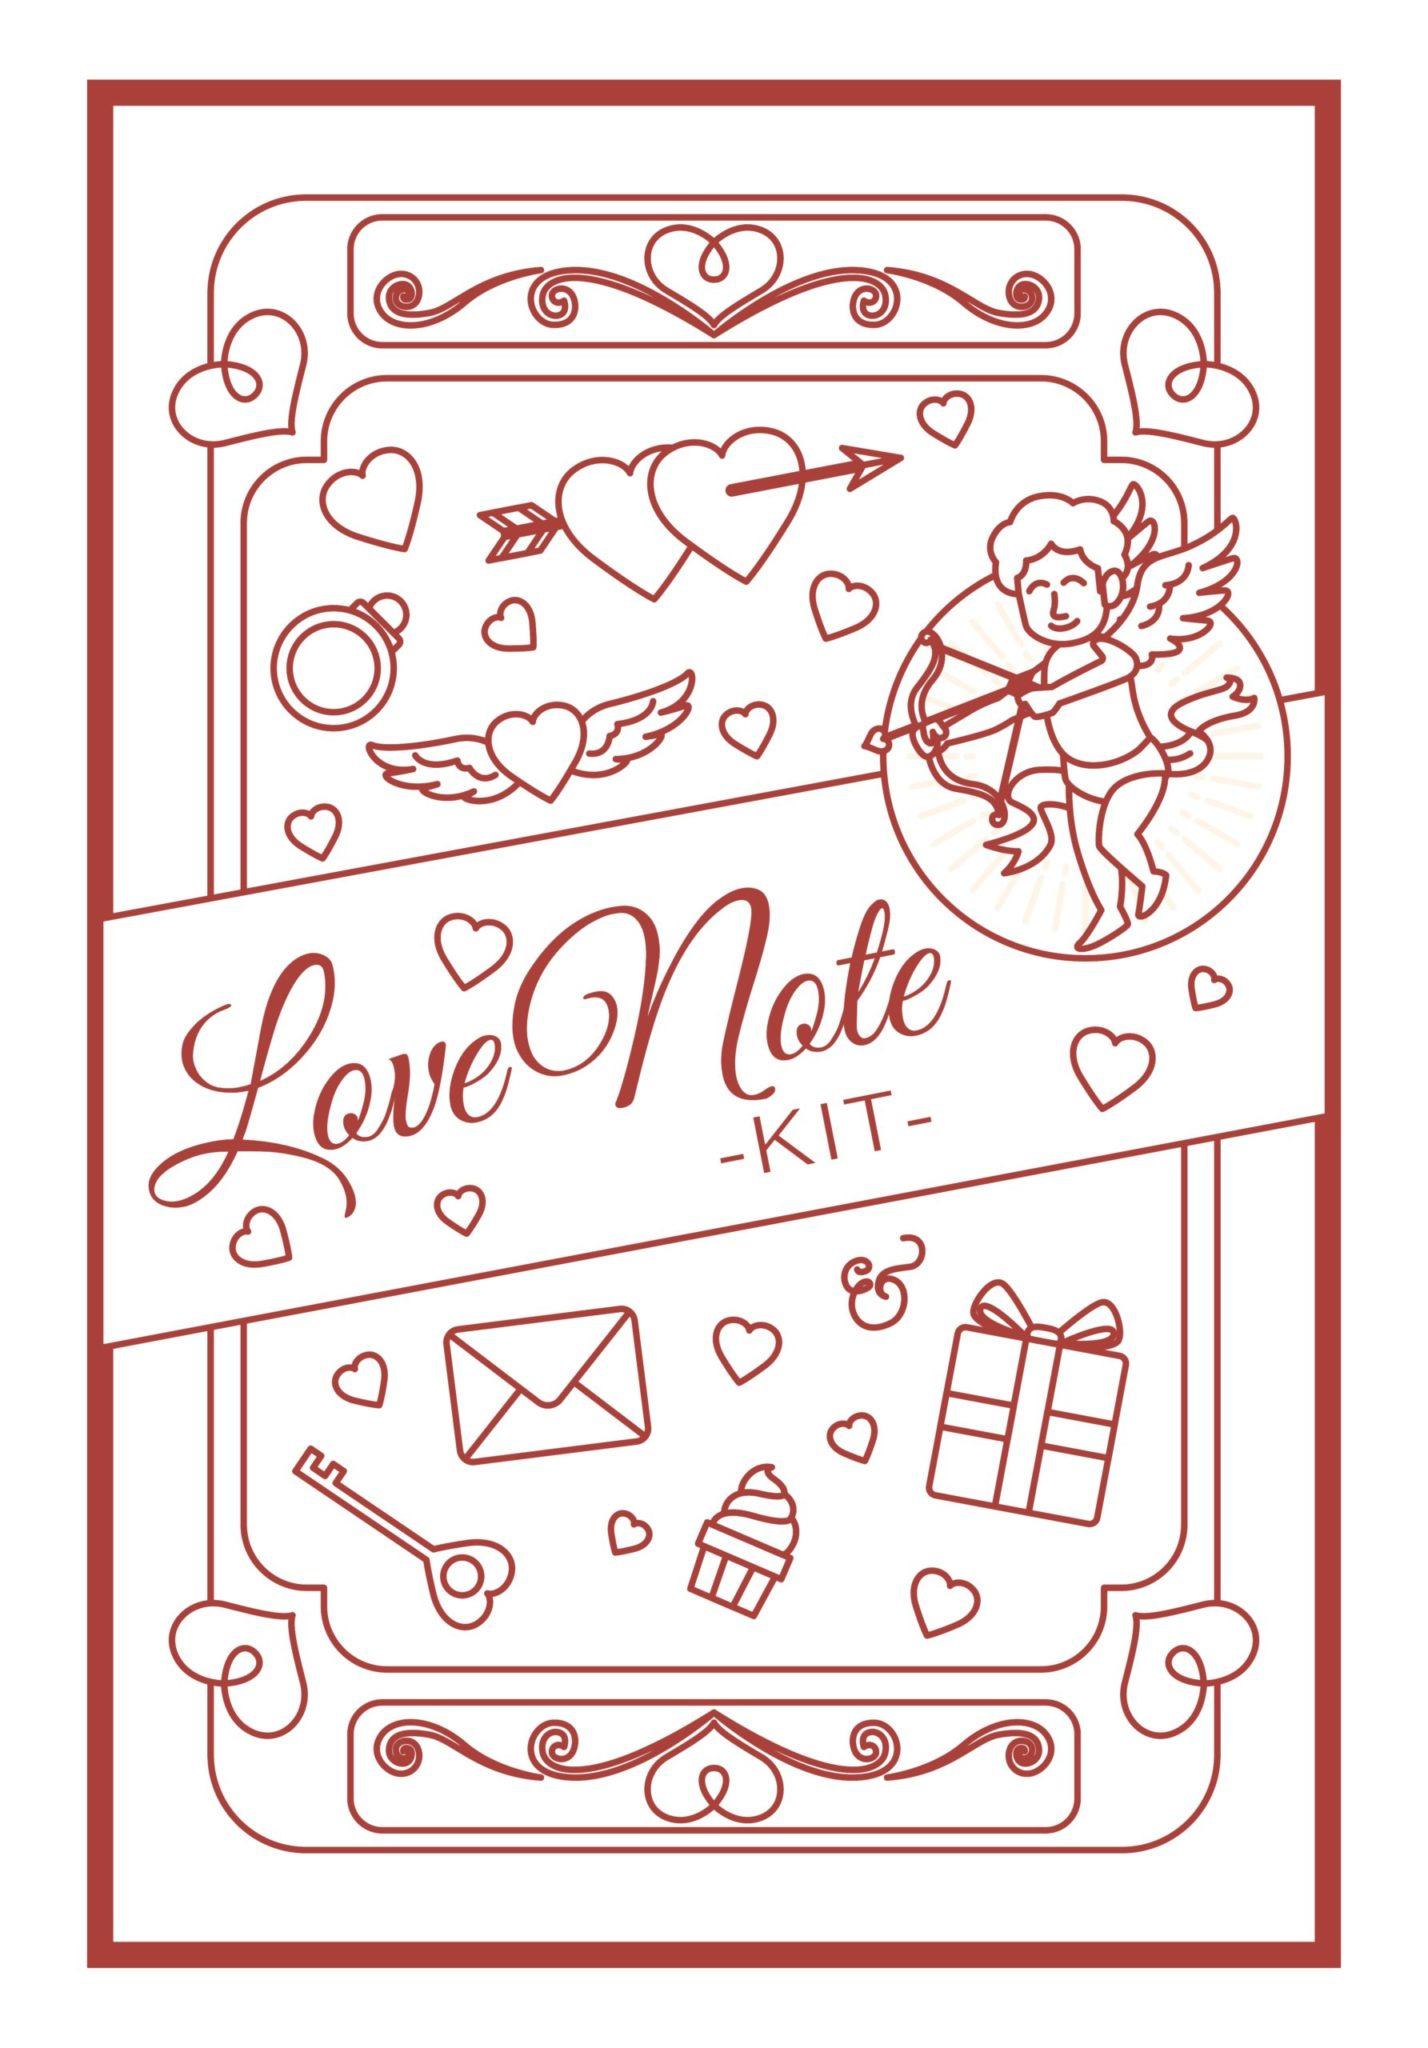 Love-Note-Kit-special-occasion-valentines-day-graphic